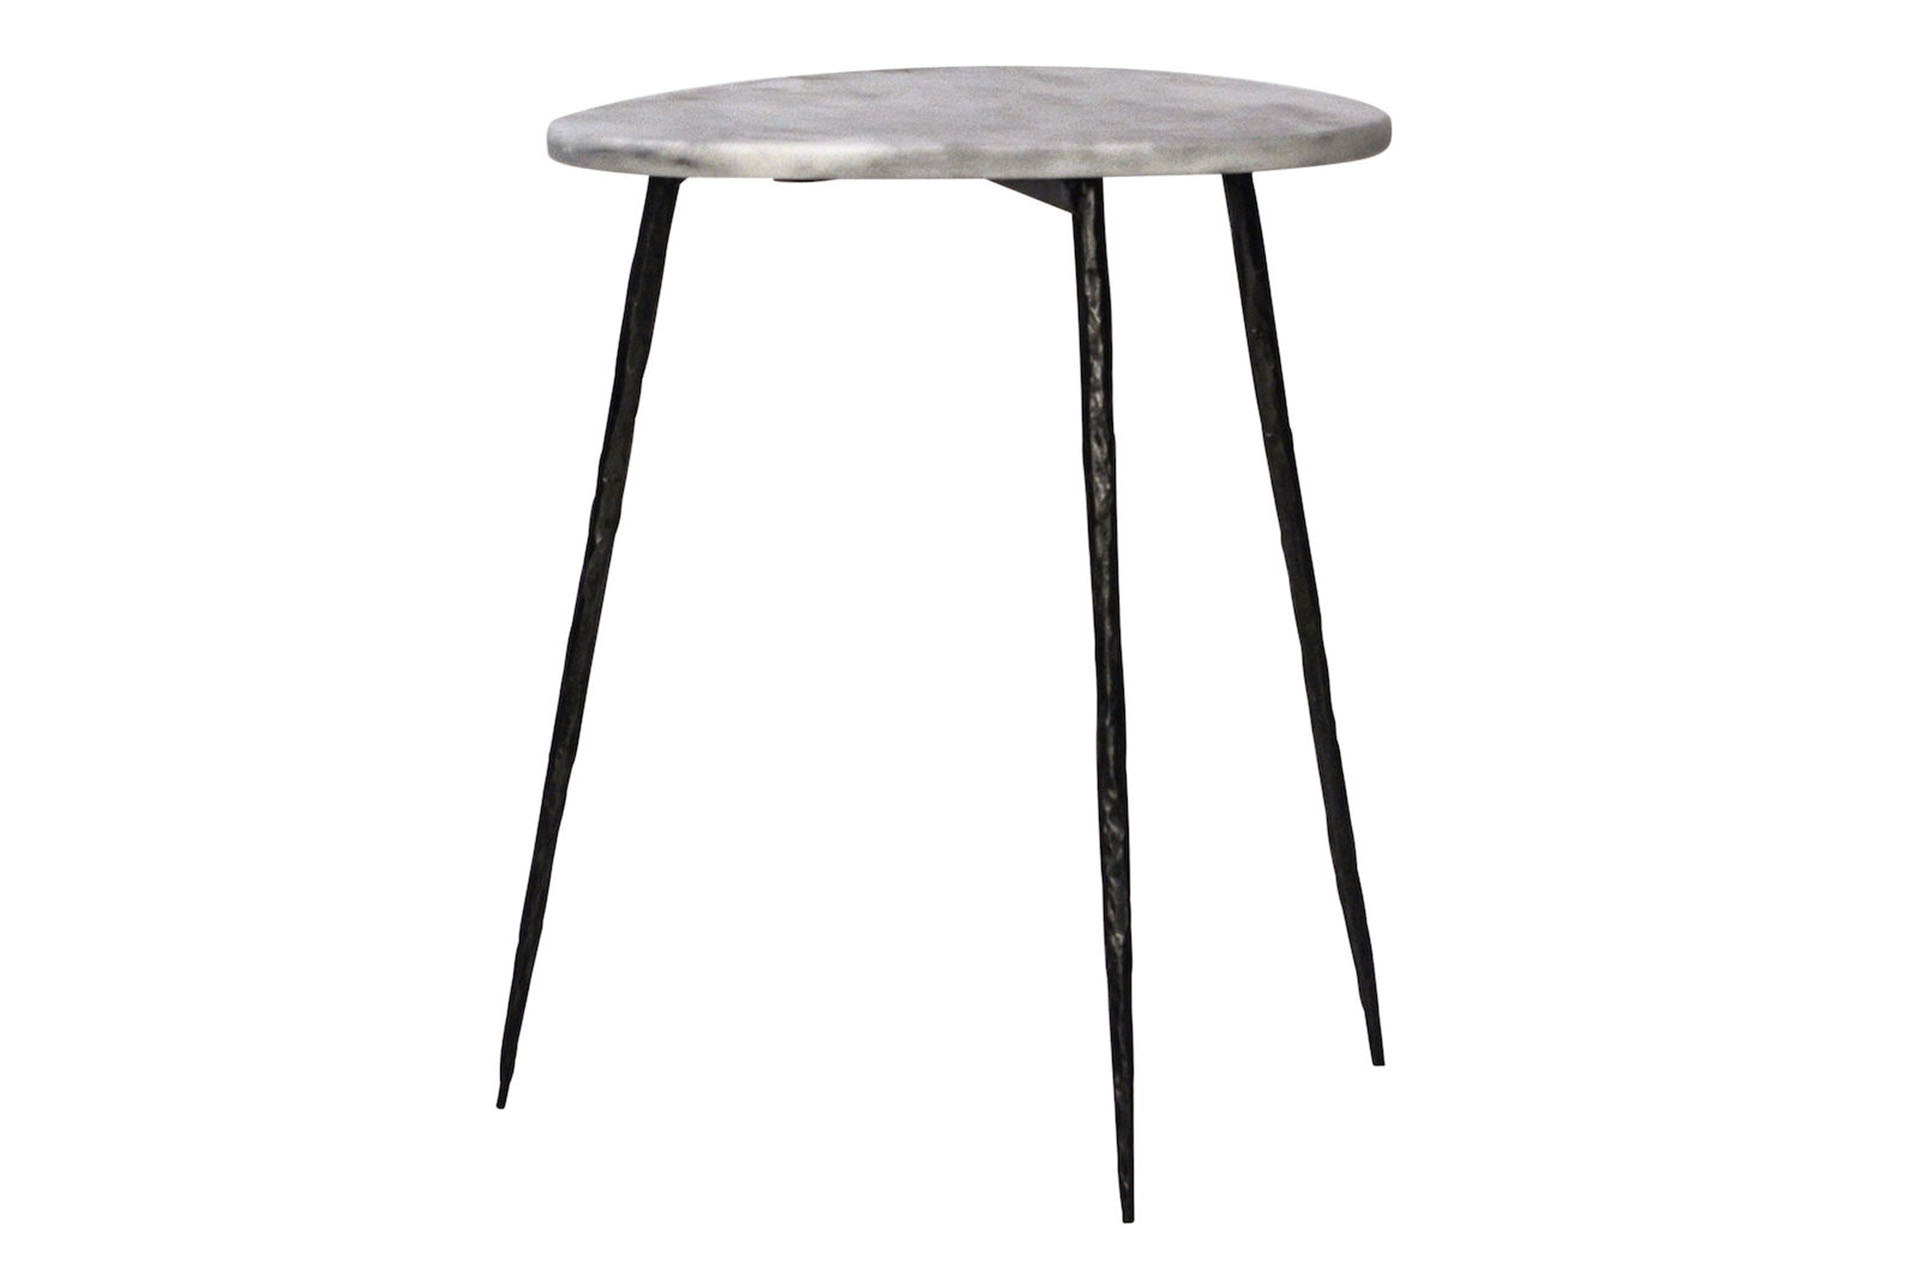 White Marble Side Table   360 Elements. View Size View Size Large View